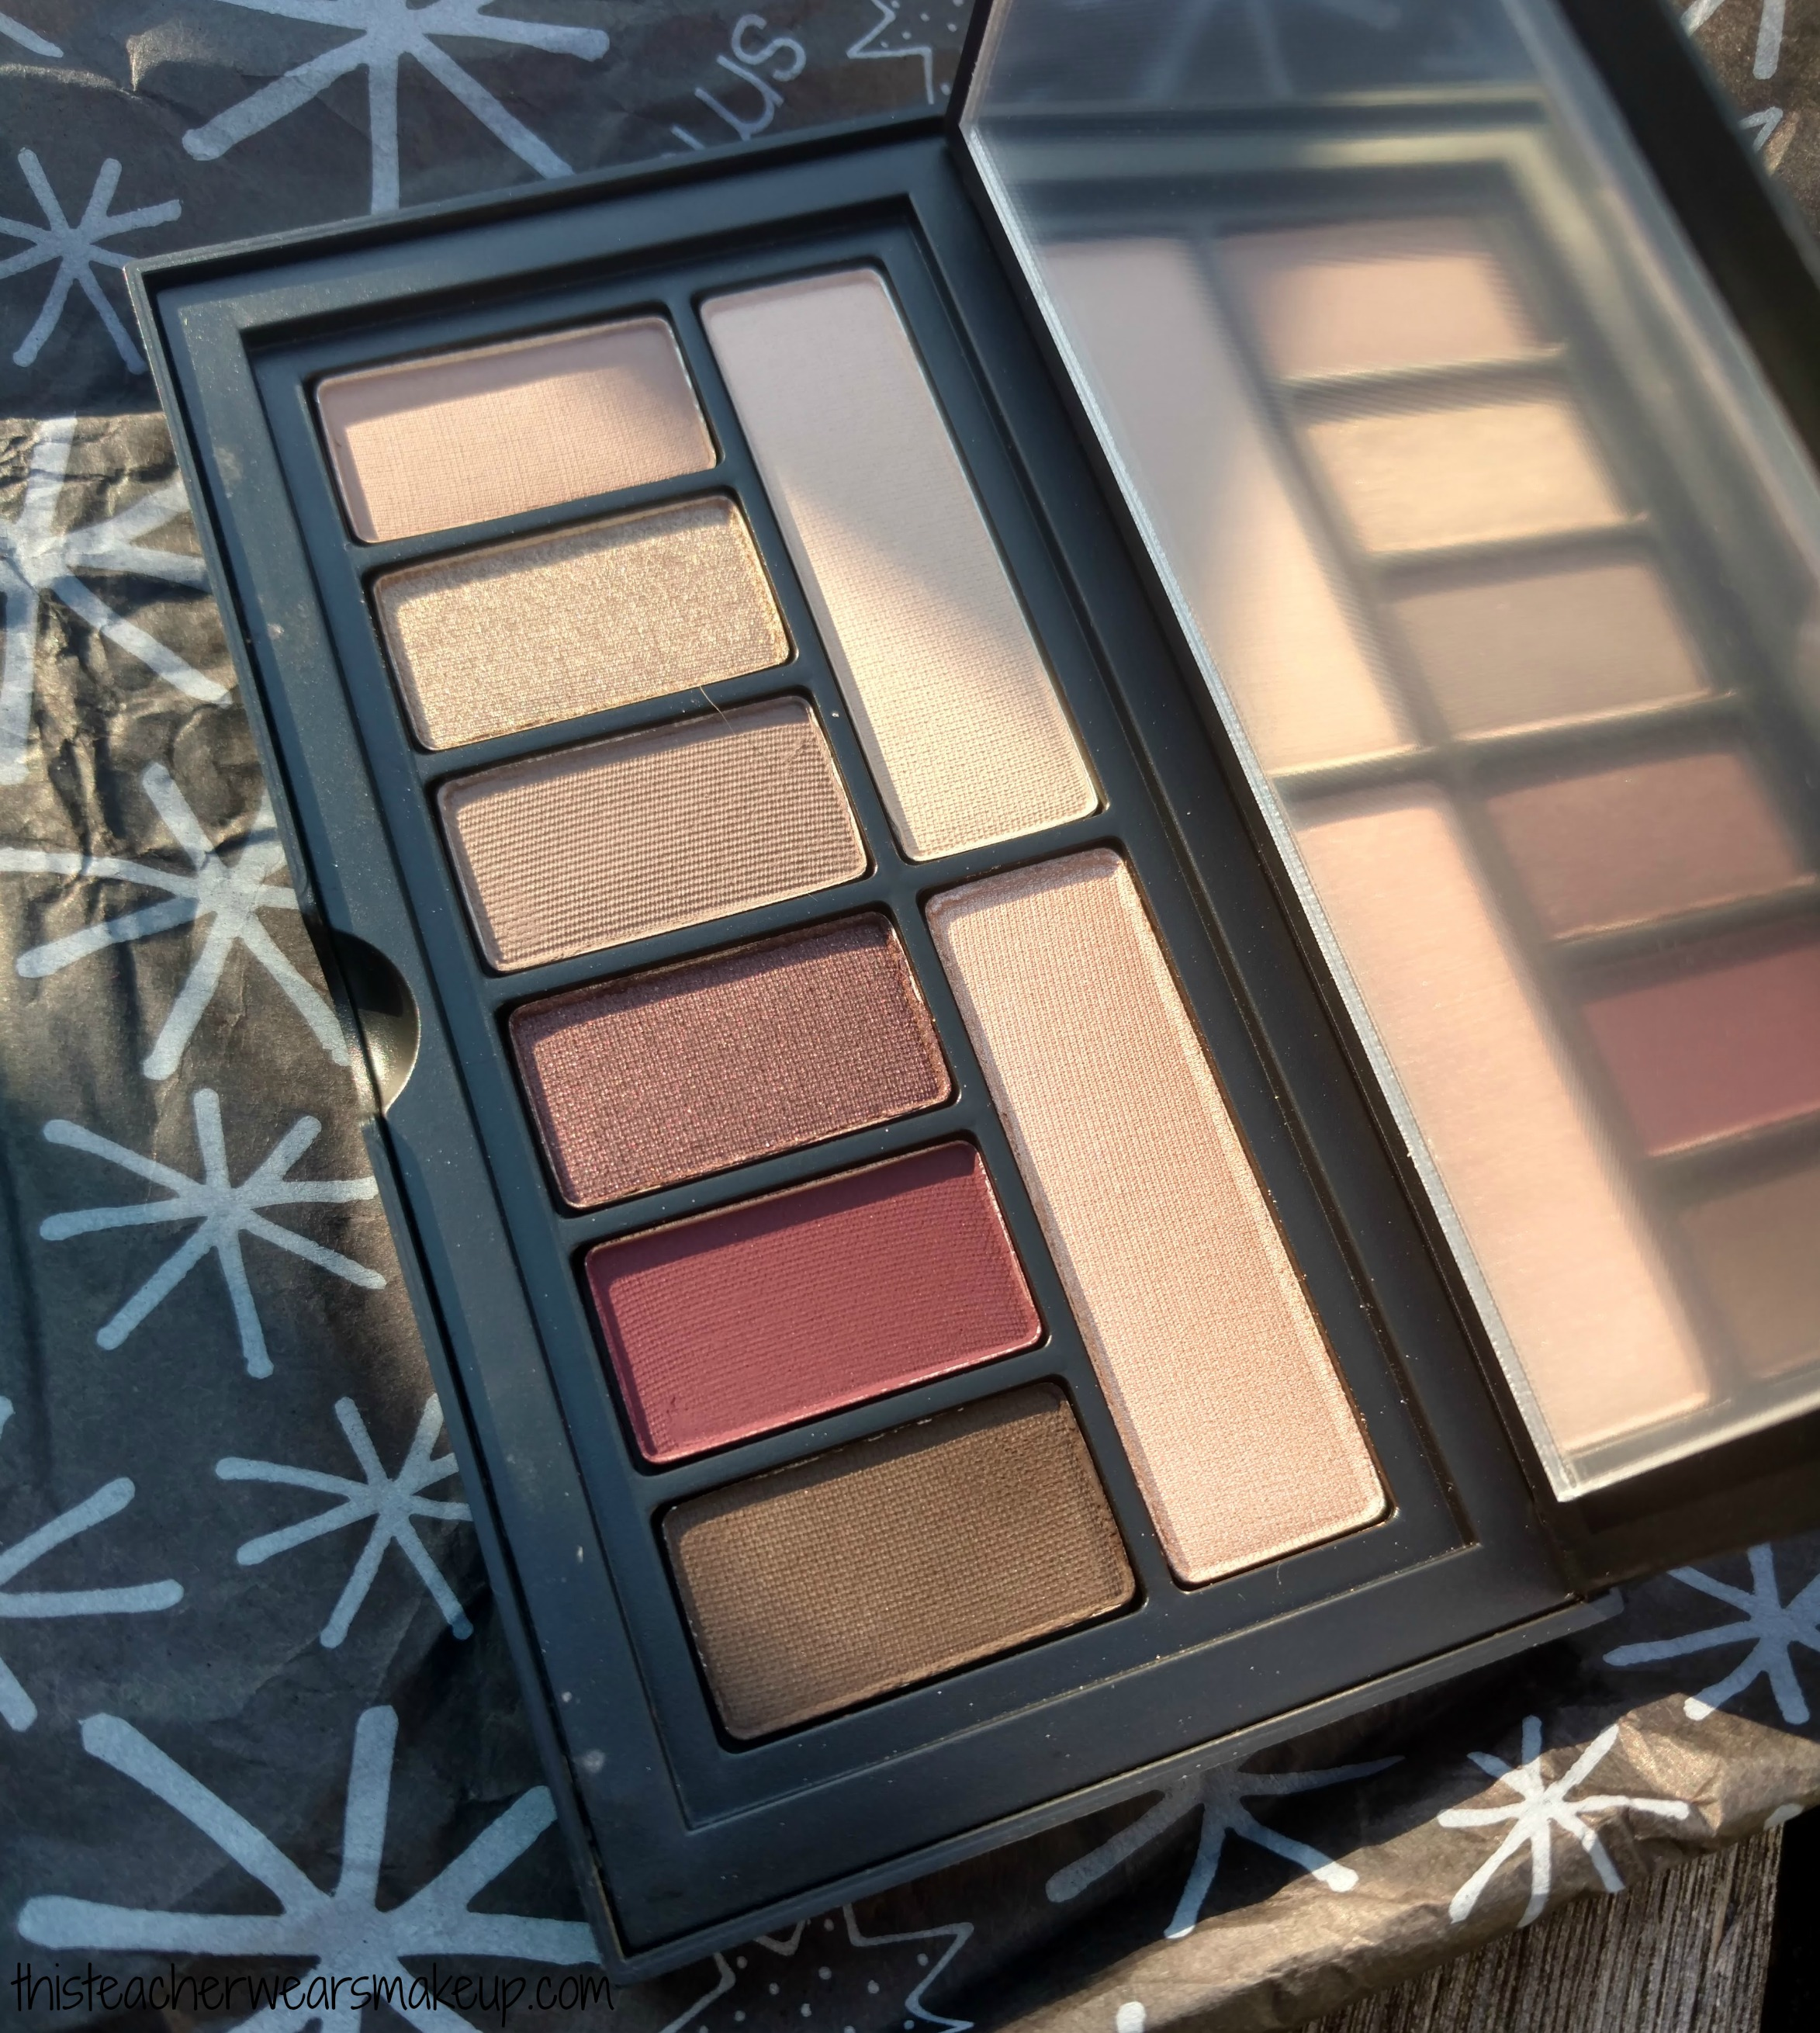 Smashbox Drawn In Decked Out The Set You Need For